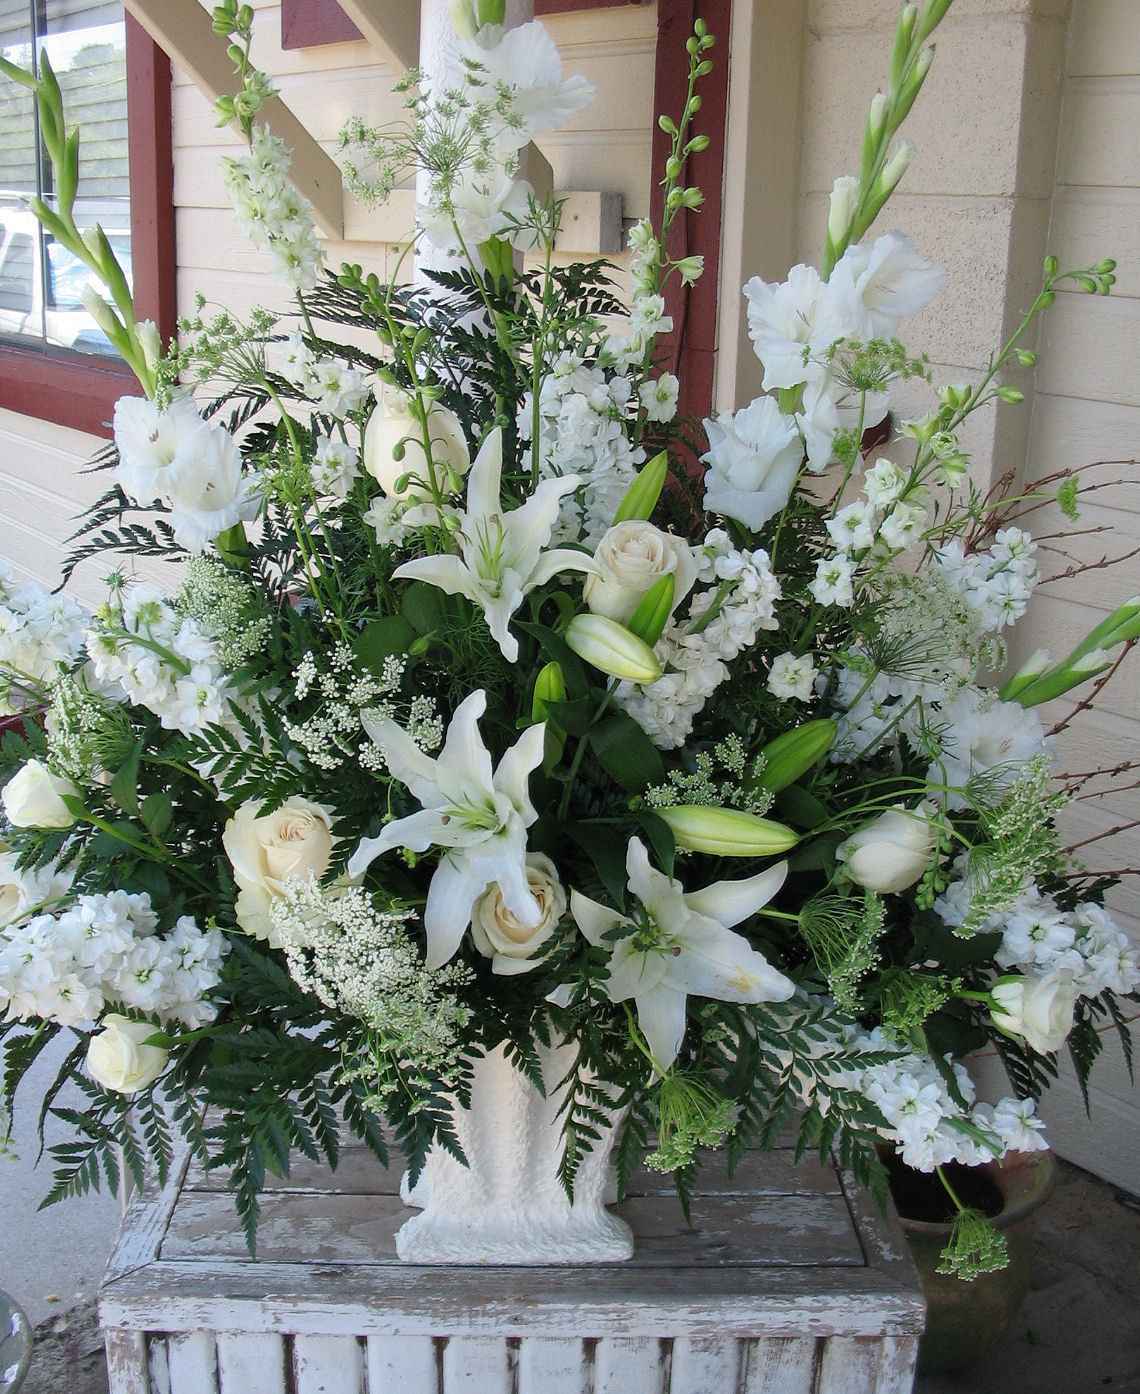 Wedding Flower Arrangements: Wedding. Romance. Party. Happiness Moment. Ideas. Sharing